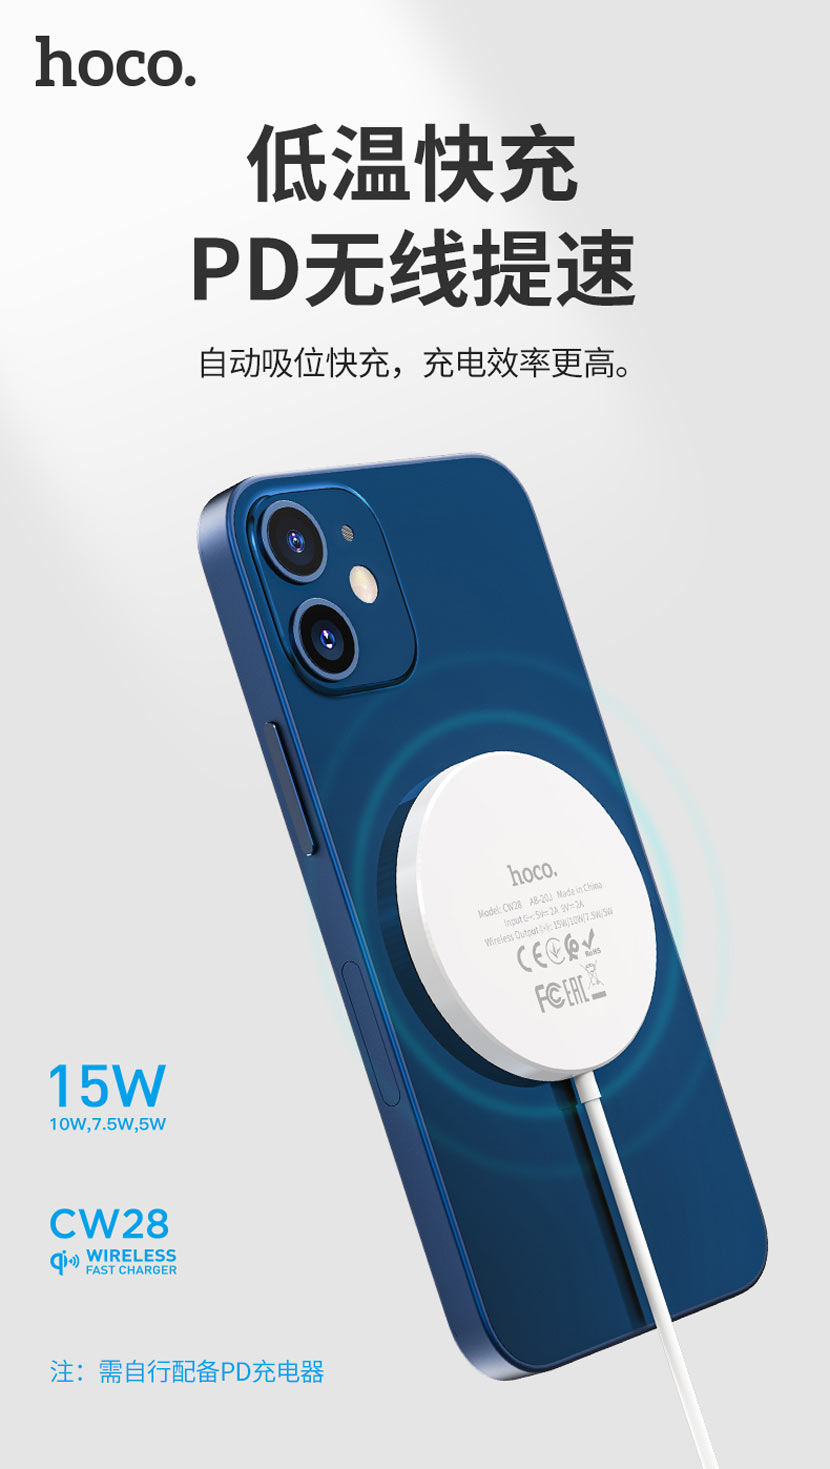 hoco news cw28 original series magnetic wireless fast charger pd cn